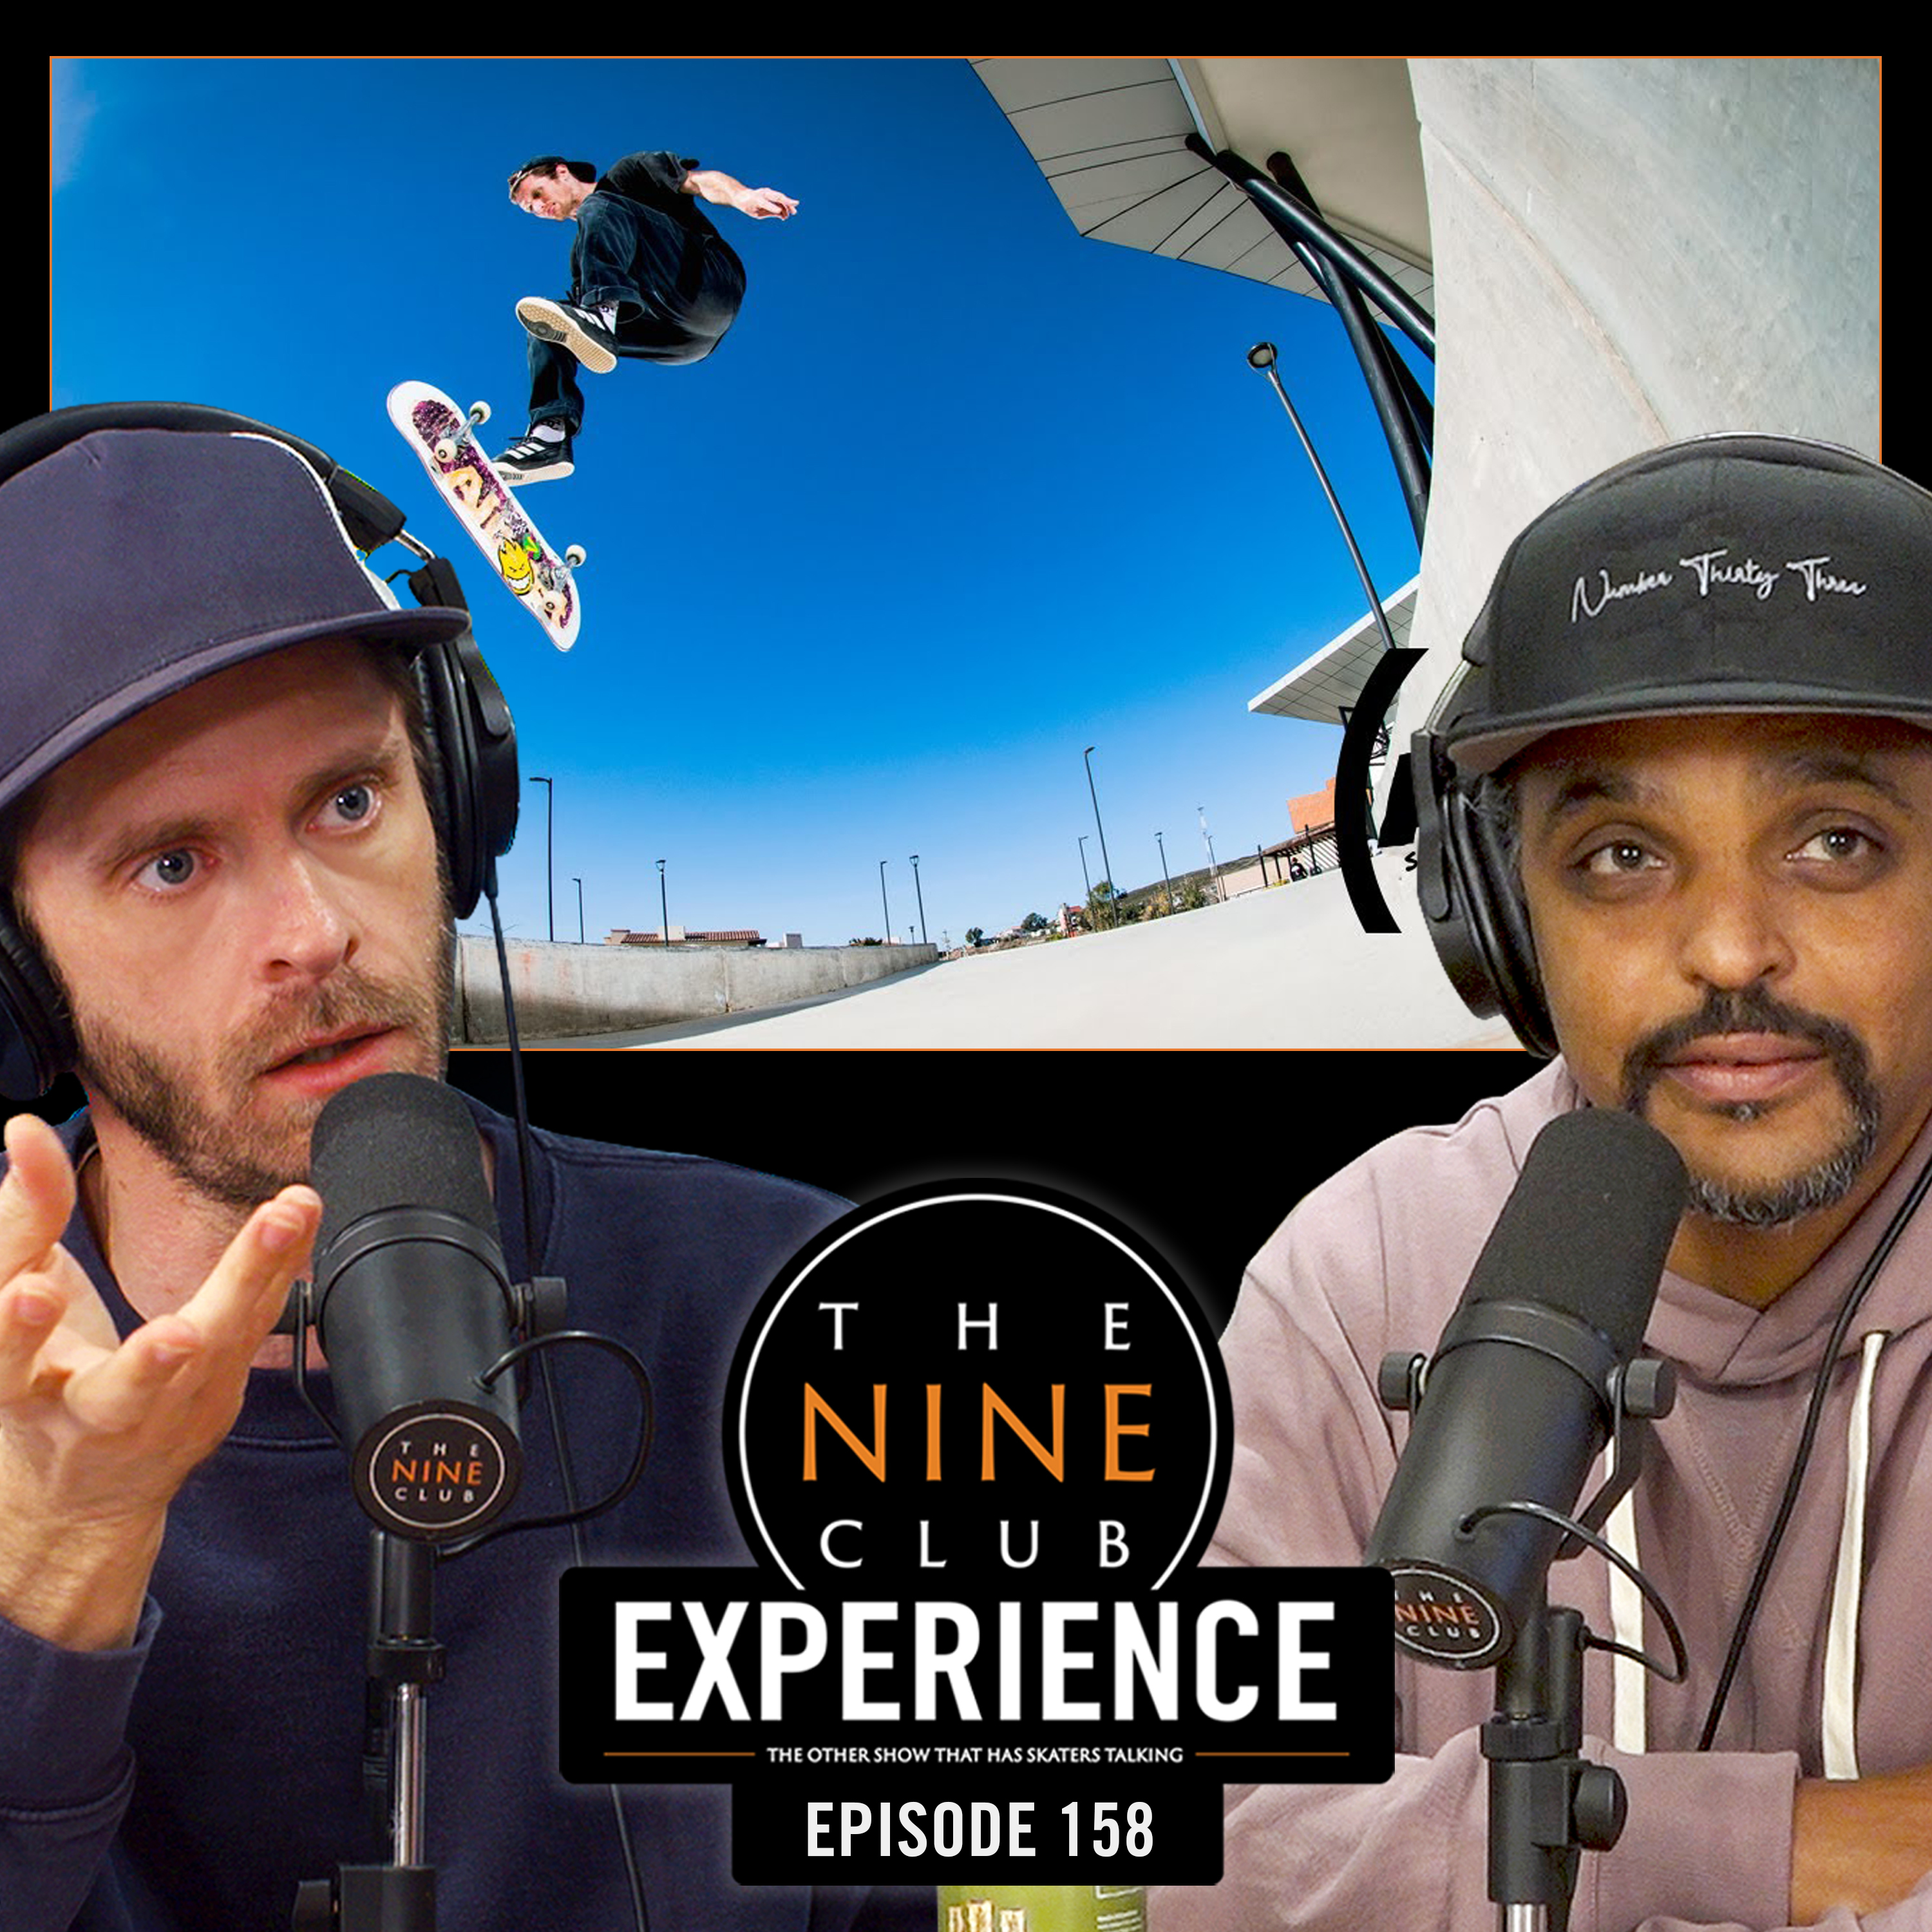 EXPERIENCE LIVE #158 - Almost Skateboards, TJ Rogers, Olympics Street